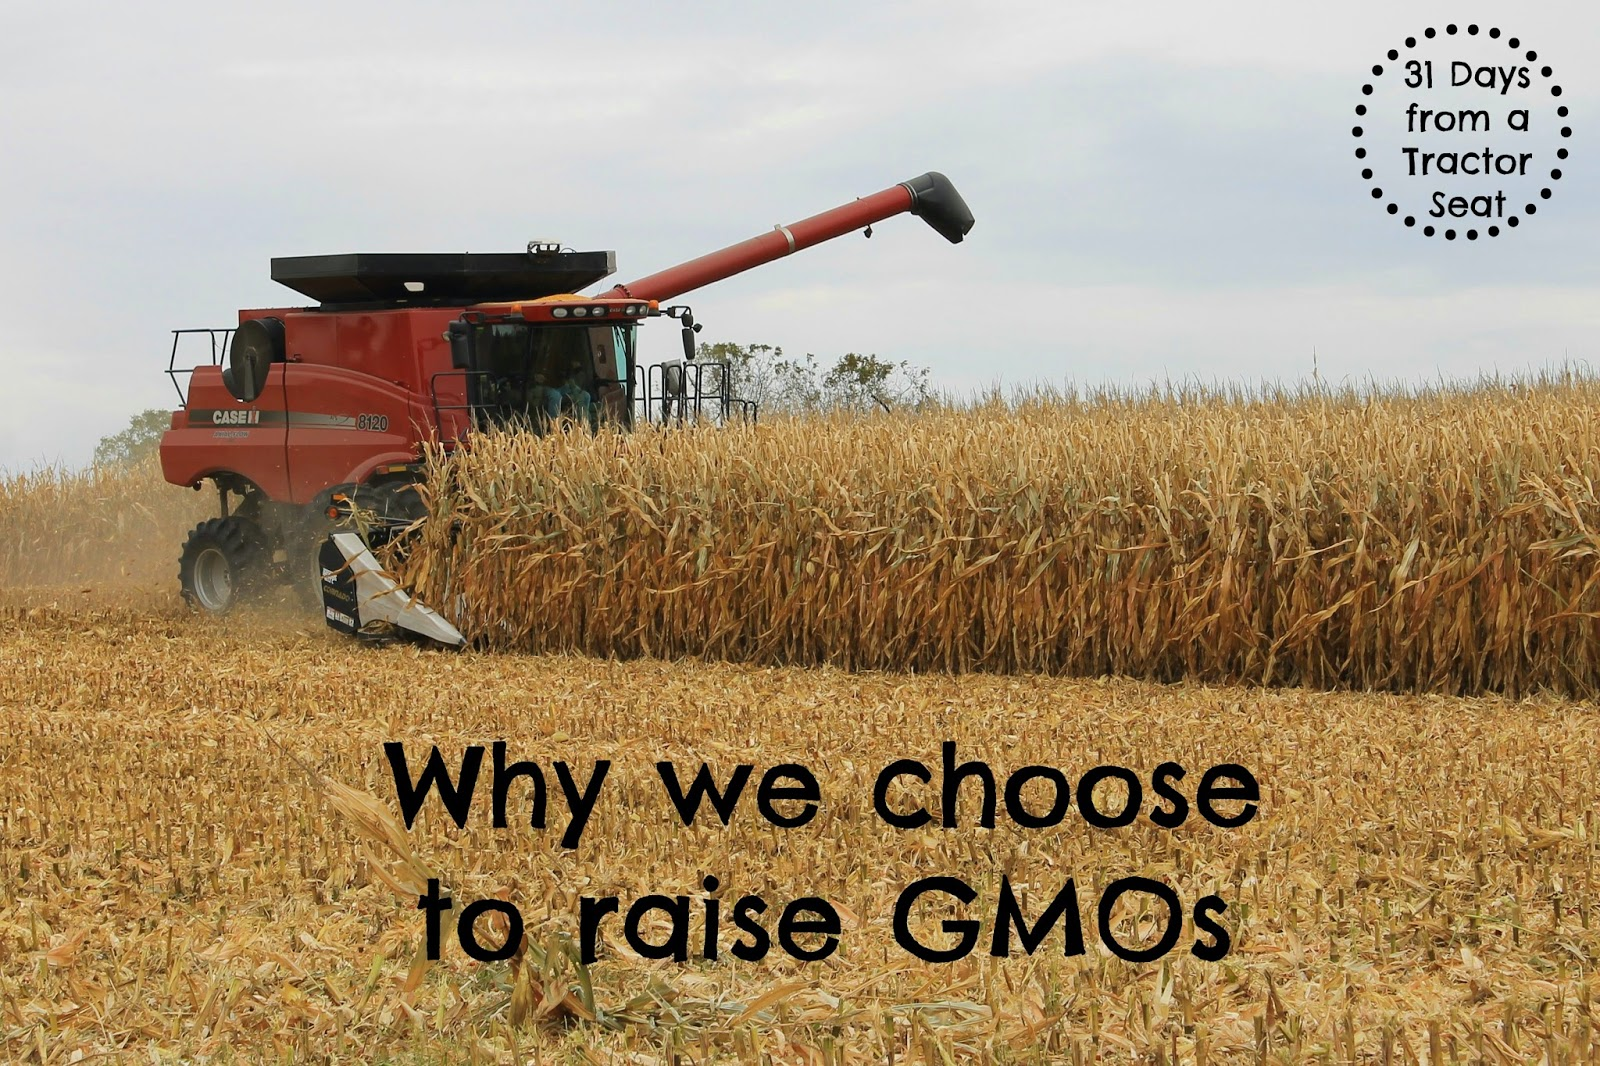 31 days from a Tractor Seat - Why we choose to raise GMOs